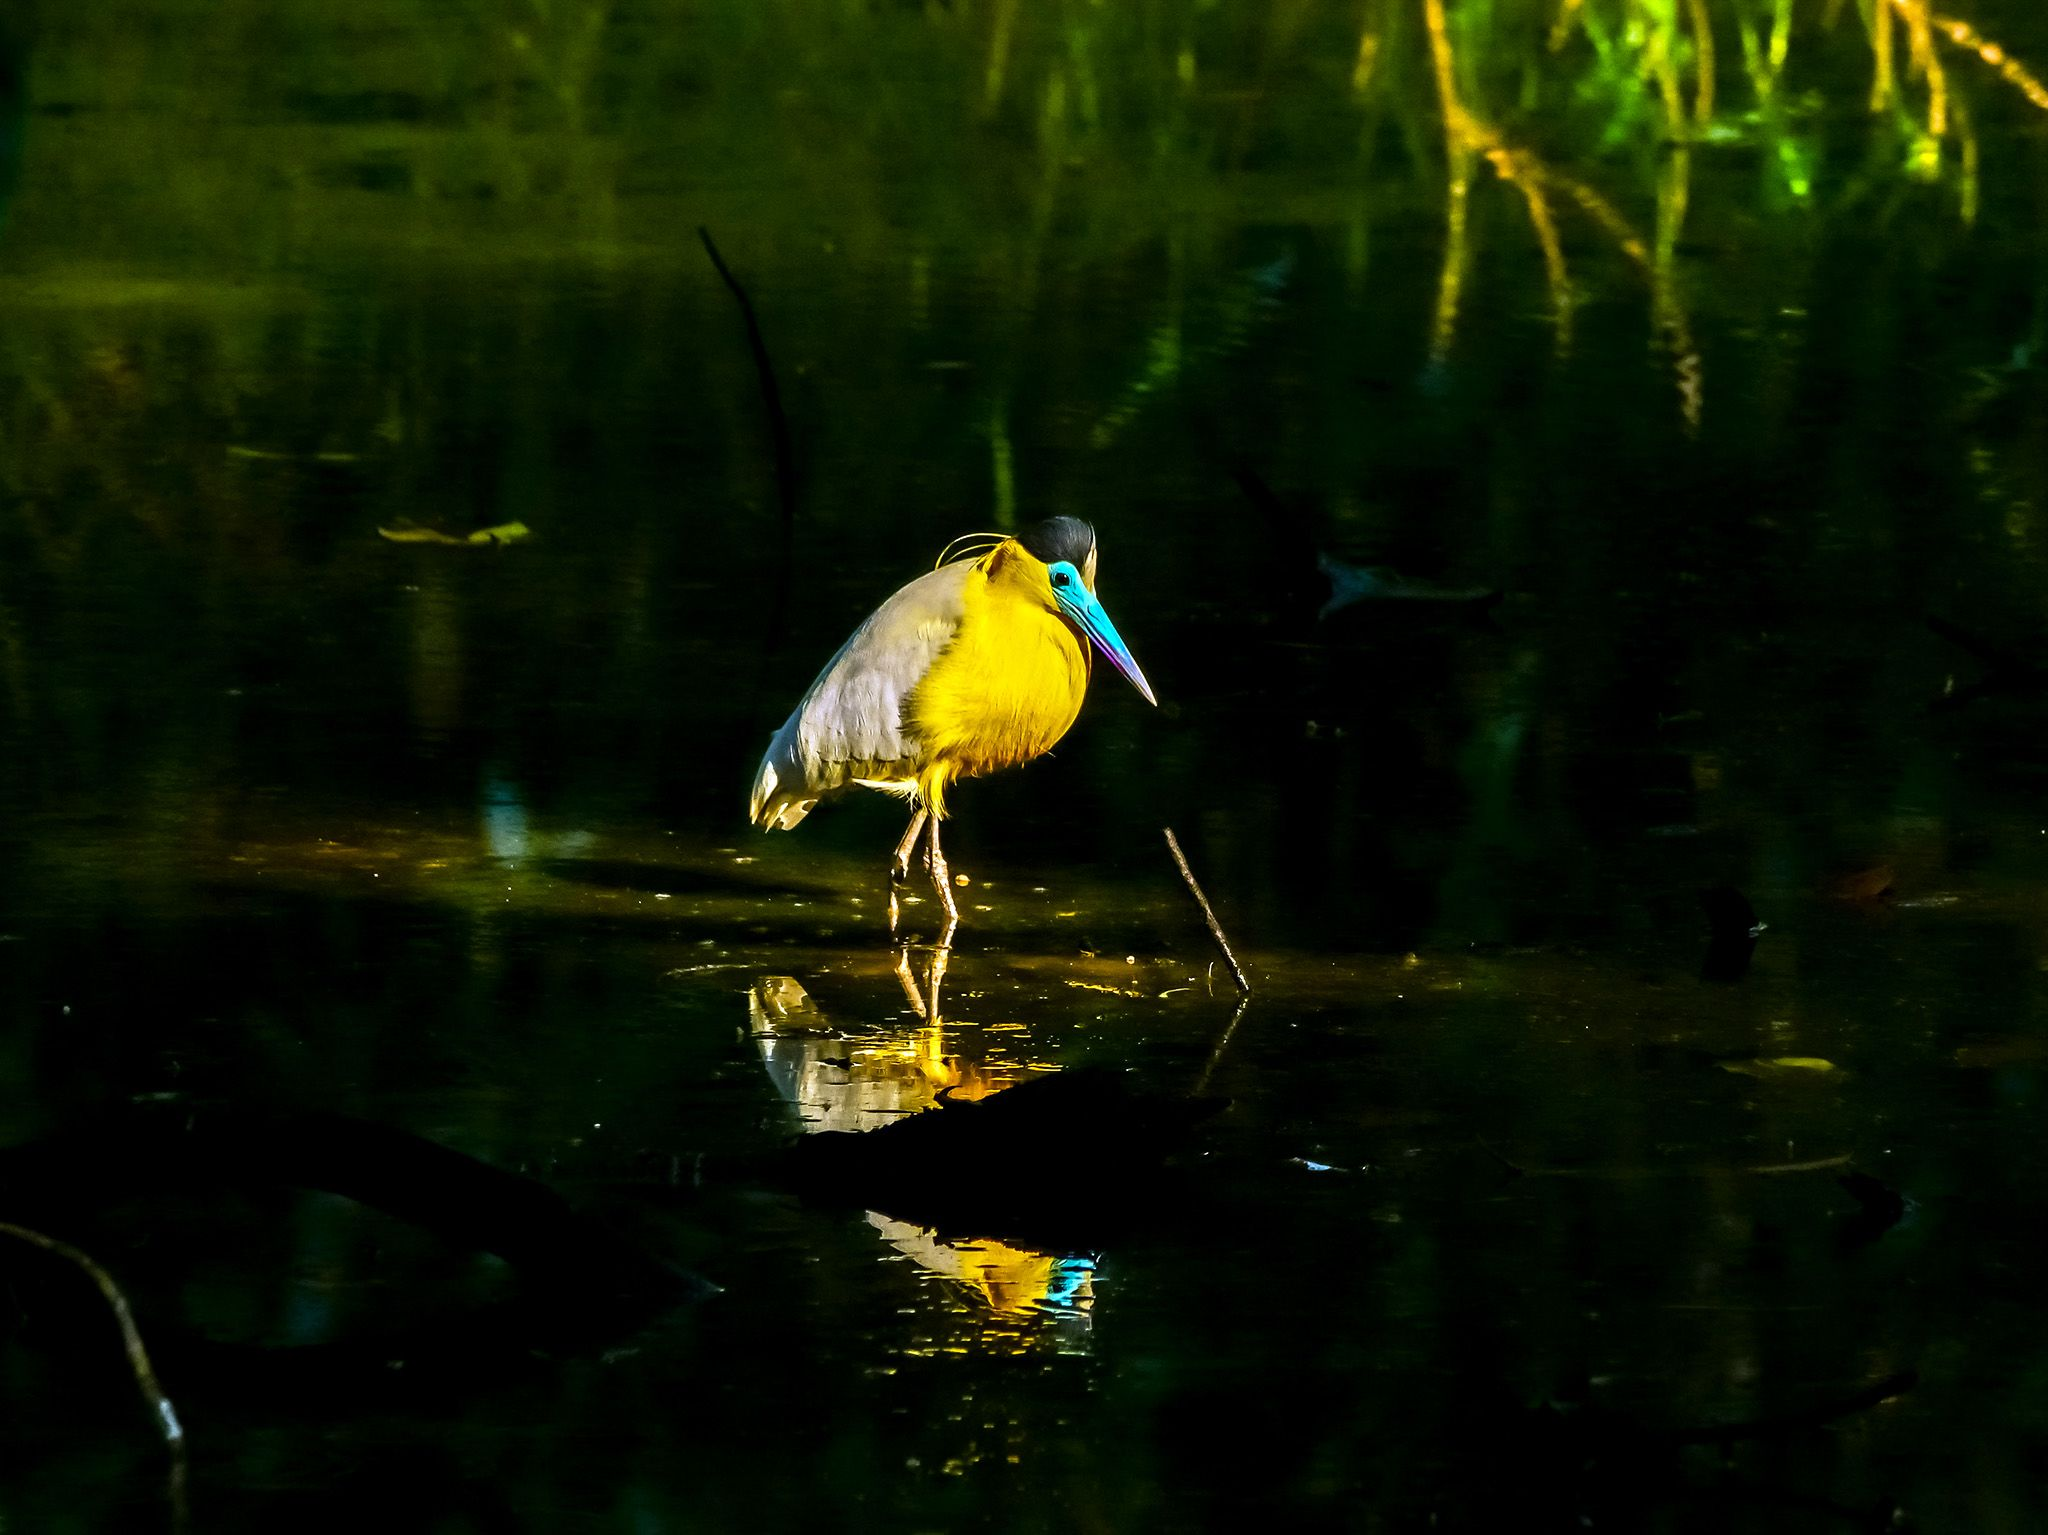 Tambopata, Madre De Dios, Peru:    Capped heron in pond. This image is from Wild Peru: Andes... [Photo of the day - November 2018]